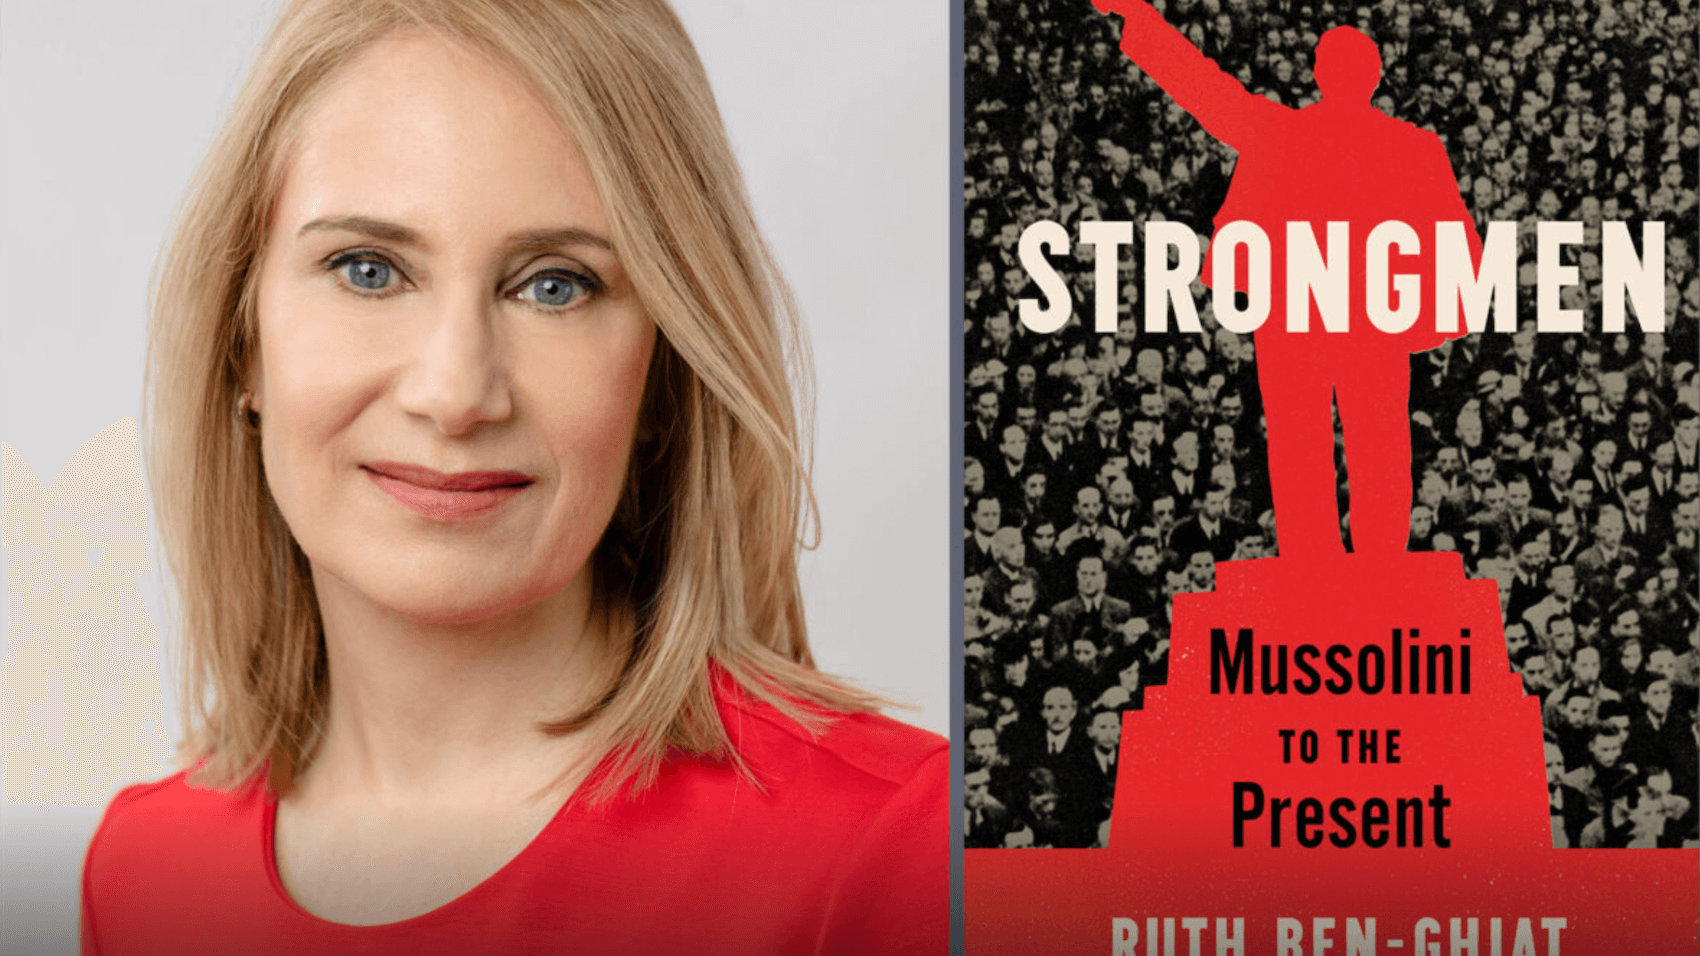 Ruth Ben-Ghiat is Professor of History and Italian Studies at New York University and an Advisor to Protect Democracy.